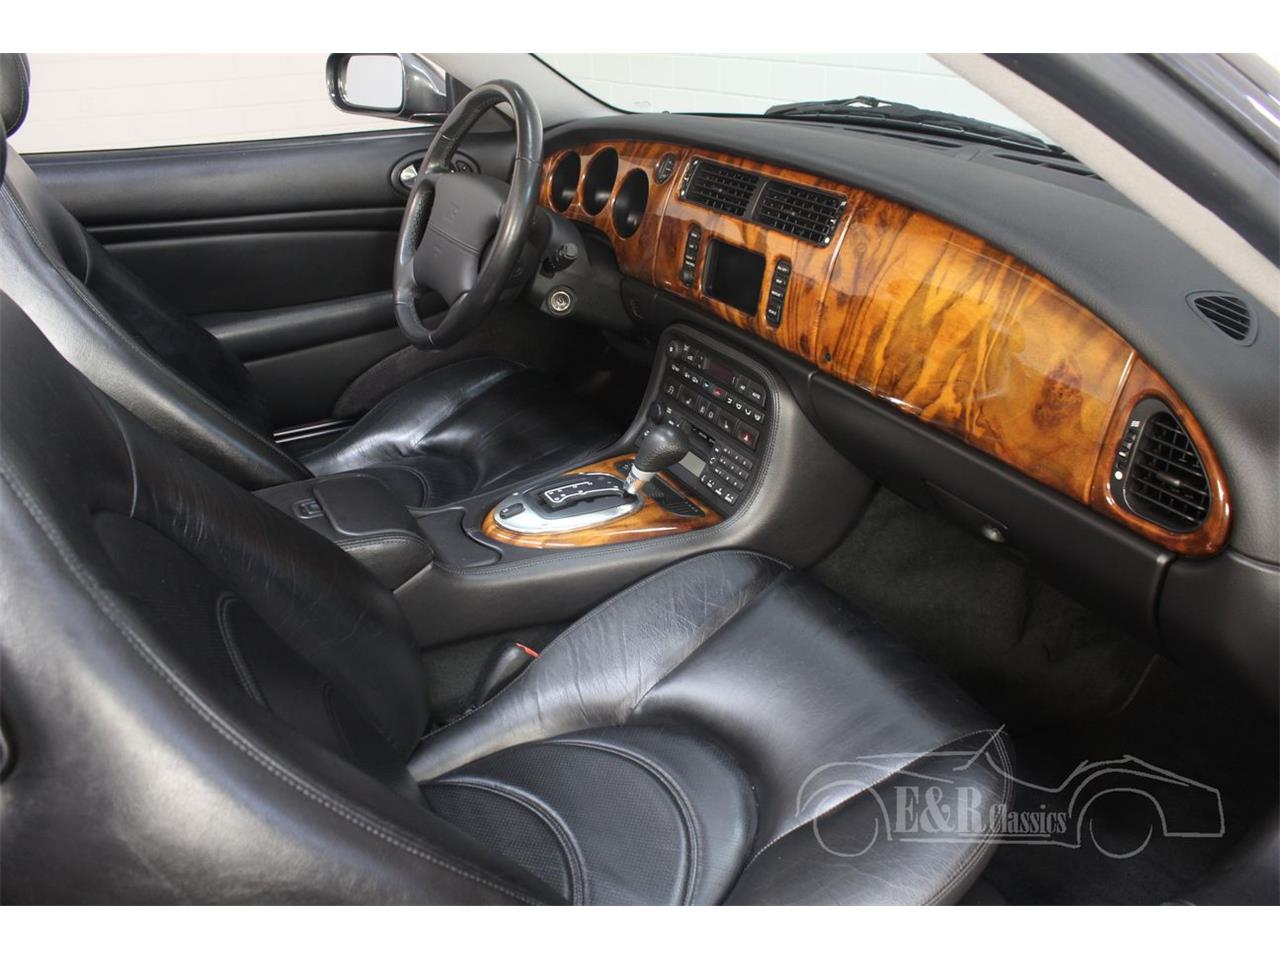 Large Picture of '03 XKR located in noord brabant - $39,200.00 Offered by E & R Classics - Q3GE